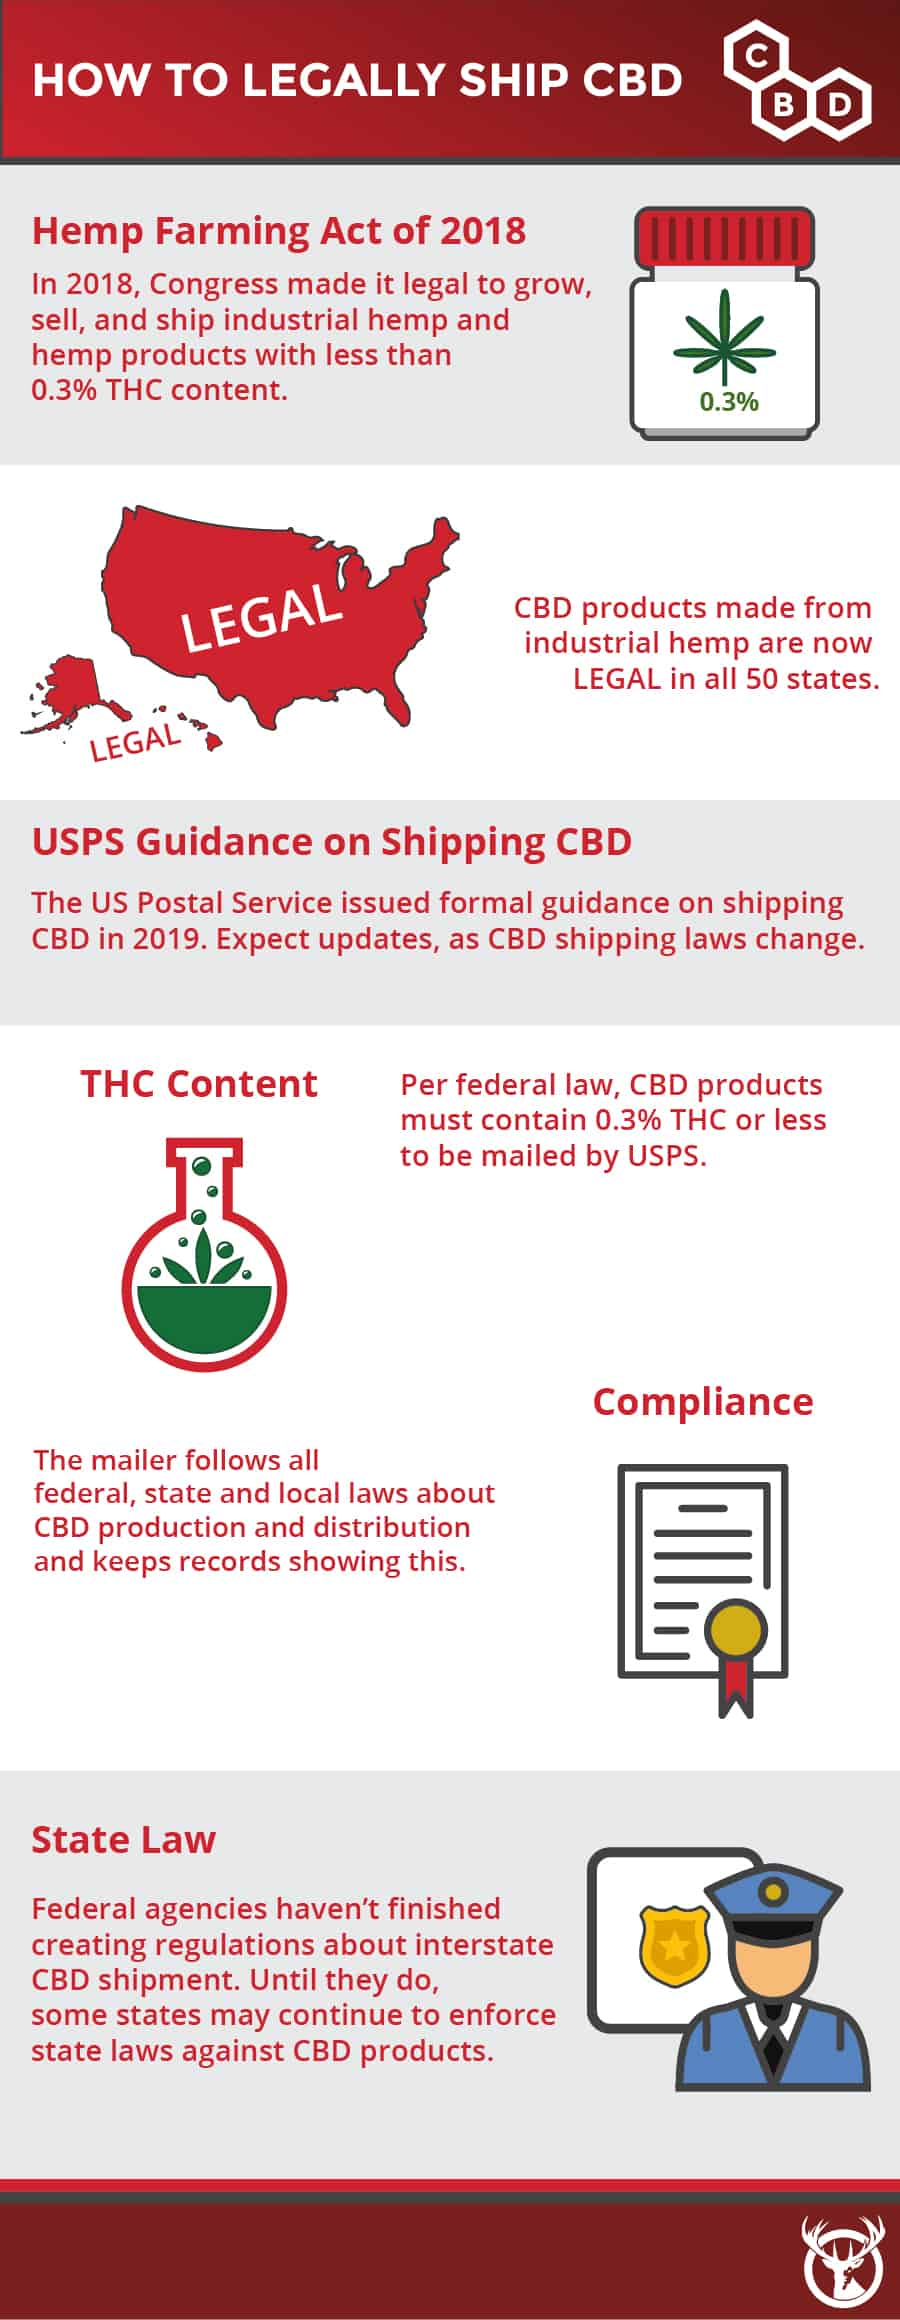 How to legally ship CBD